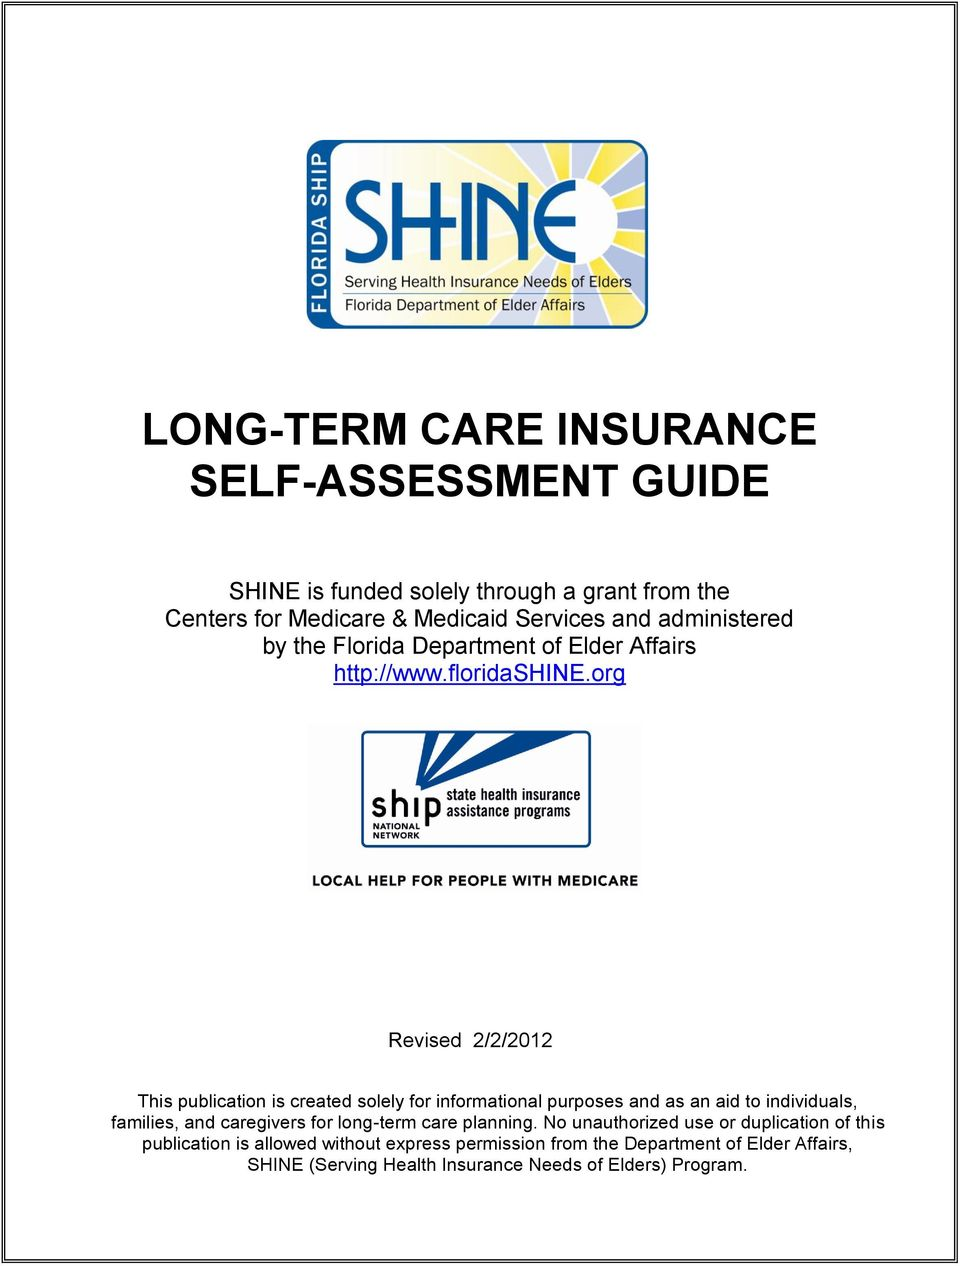 LONG-TERM CARE INSURANCE SELF-ASSESSMENT GUIDE - PDF